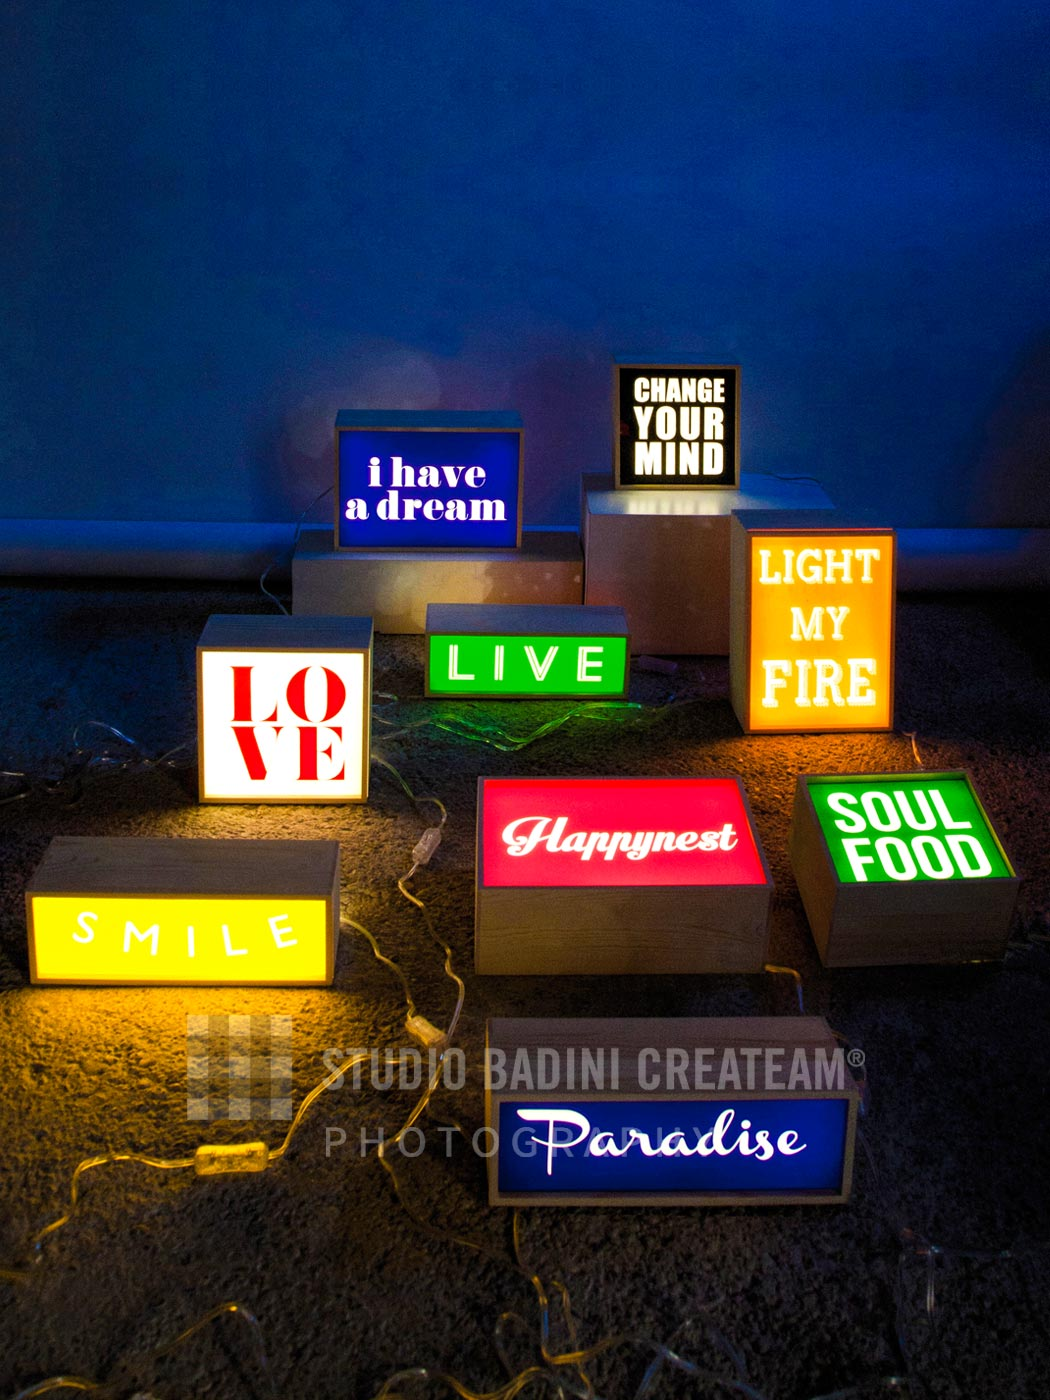 Badini Creative Studio - fotografia - seletti - lighthink box